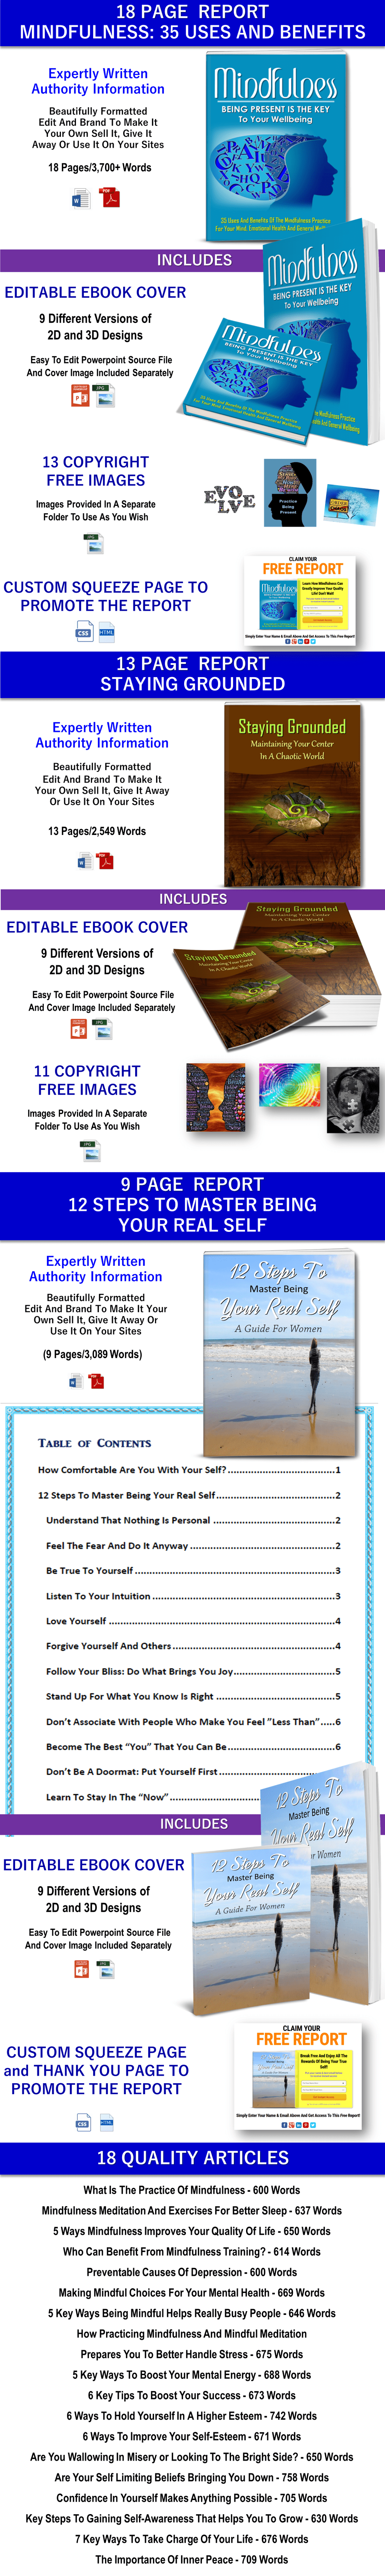 Let Go Of And Learn From Regrets Content With PLR Rights